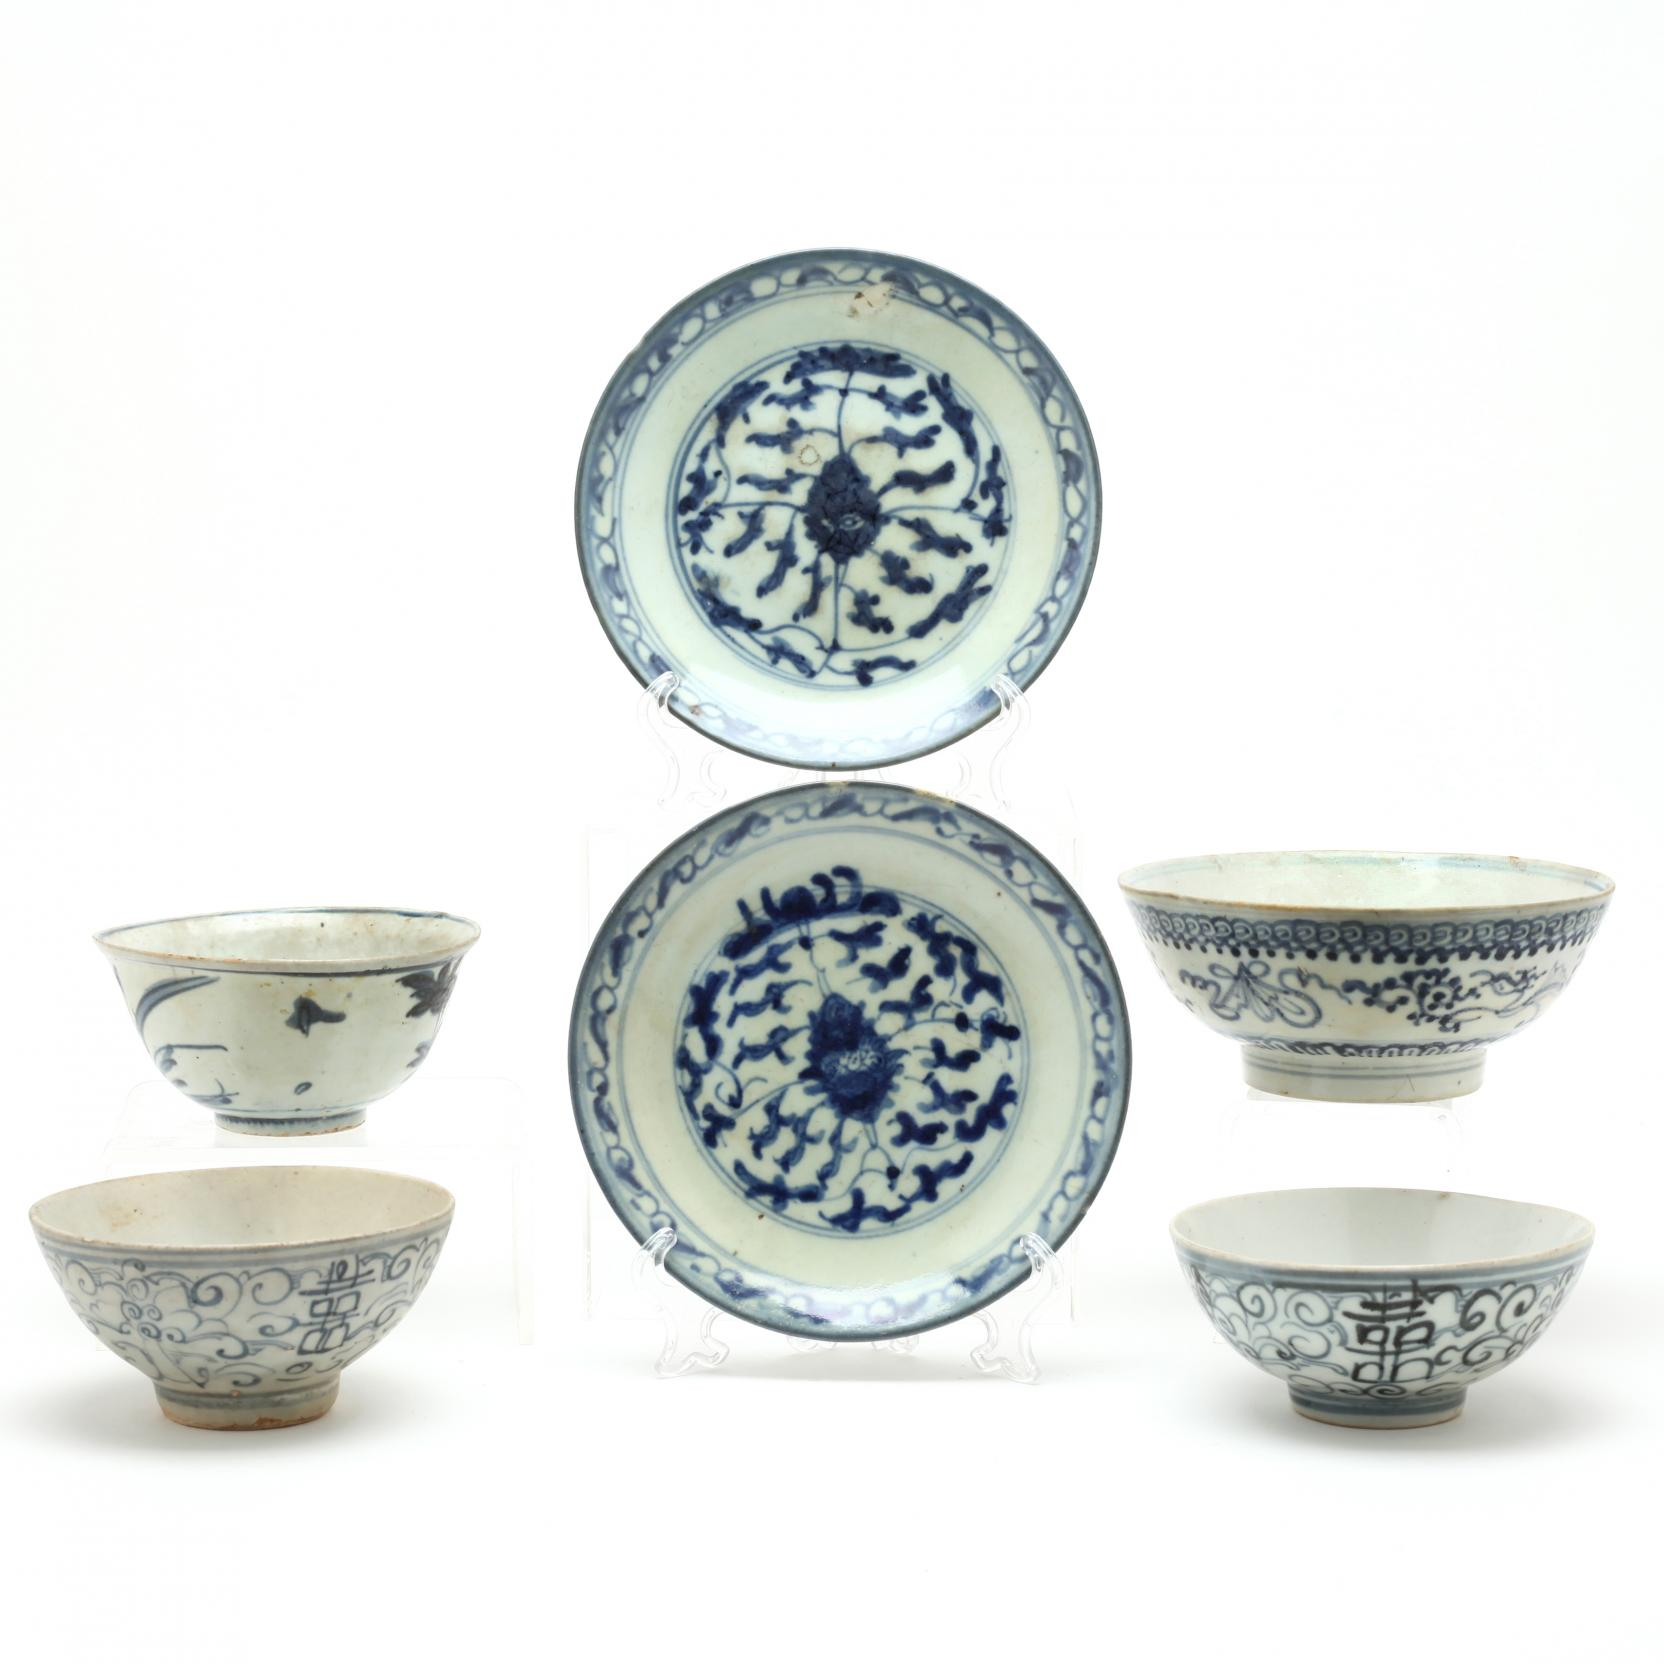 a-group-of-ming-dynasty-blue-and-white-shipwreck-ceramics